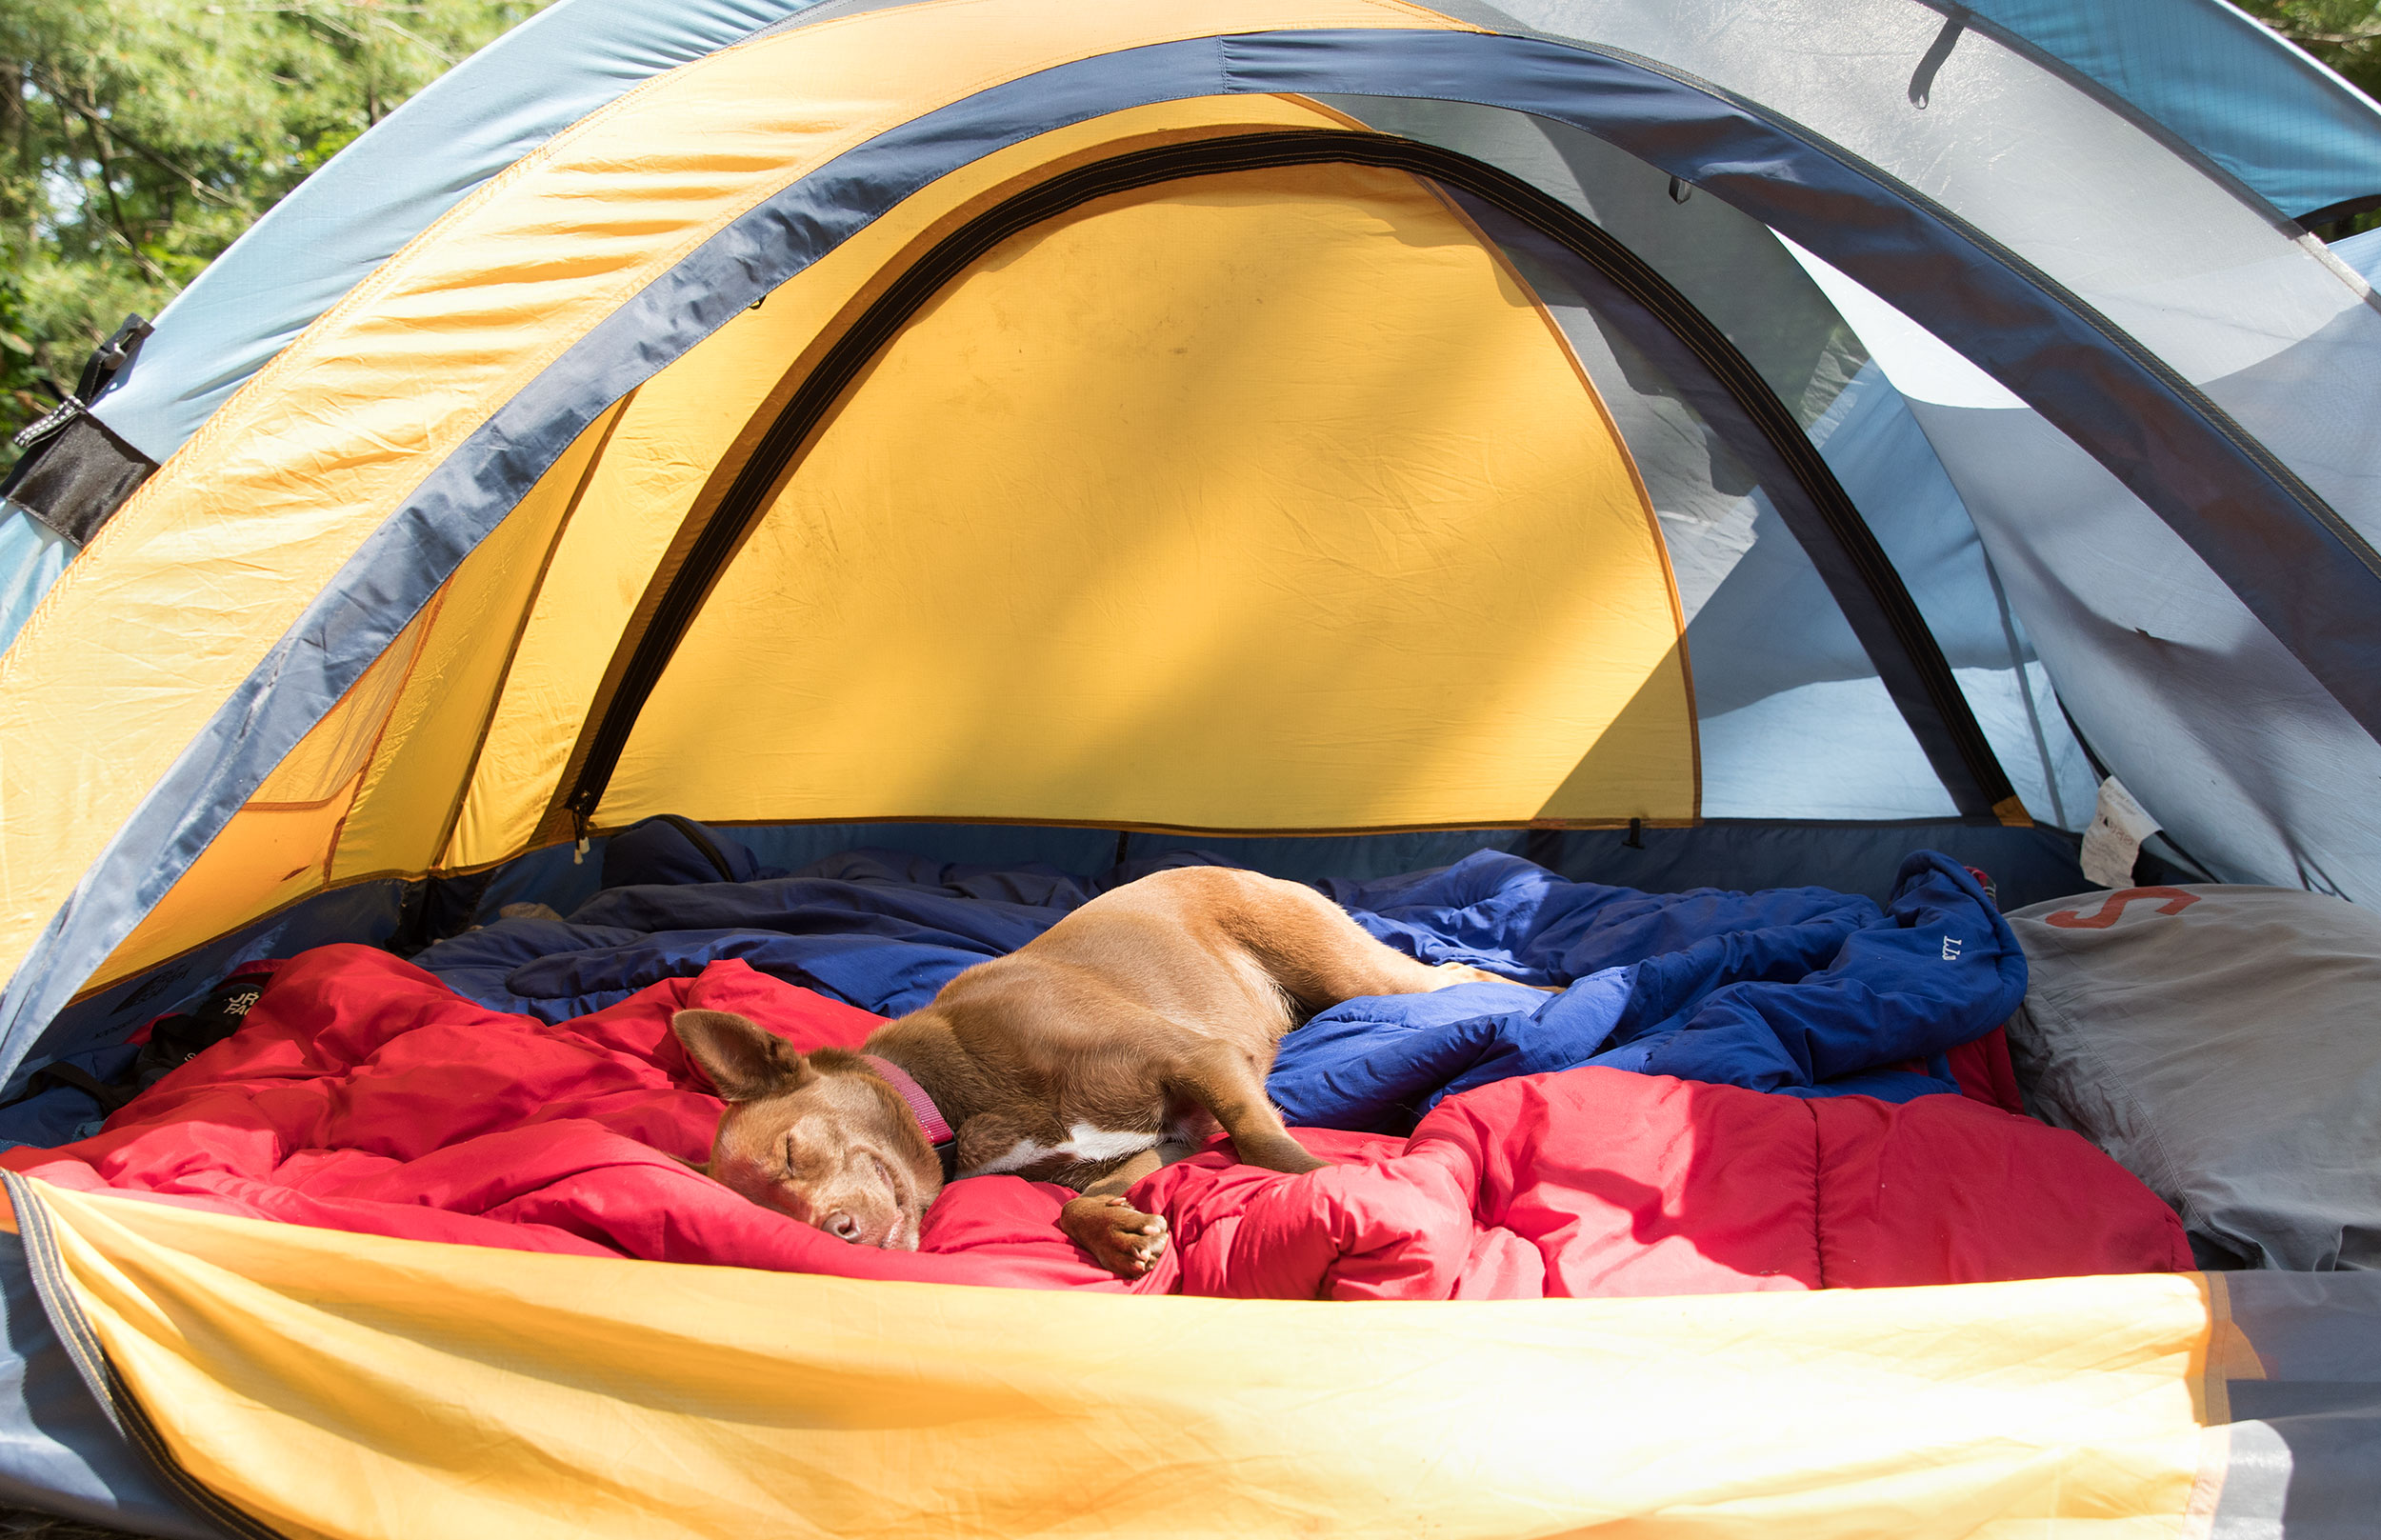 CAMPING WITH KIDS | FAMILY | CHILDHOOD | Dog | Tent | Explore | 7